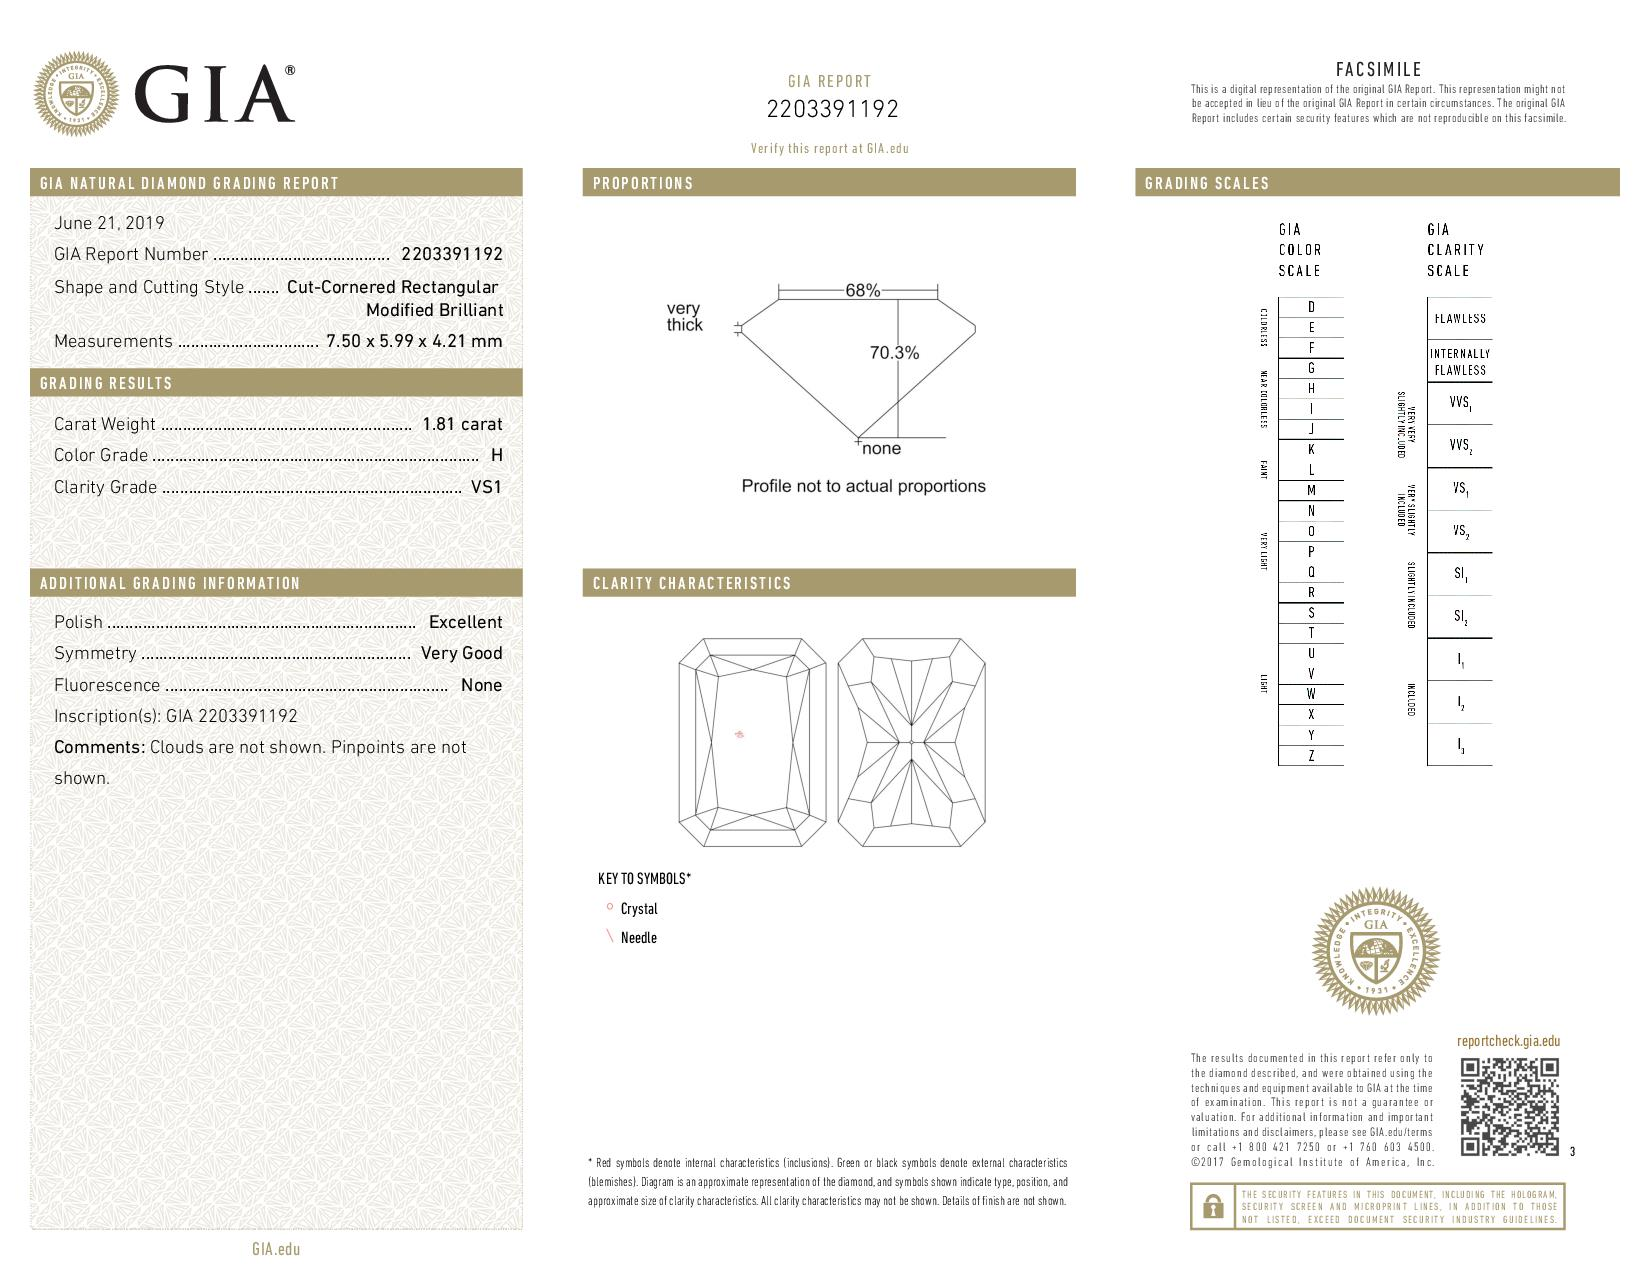 This is a 1.81 carat radiant shape, H color, VS1 clarity natural diamond accompanied by a GIA grading report.